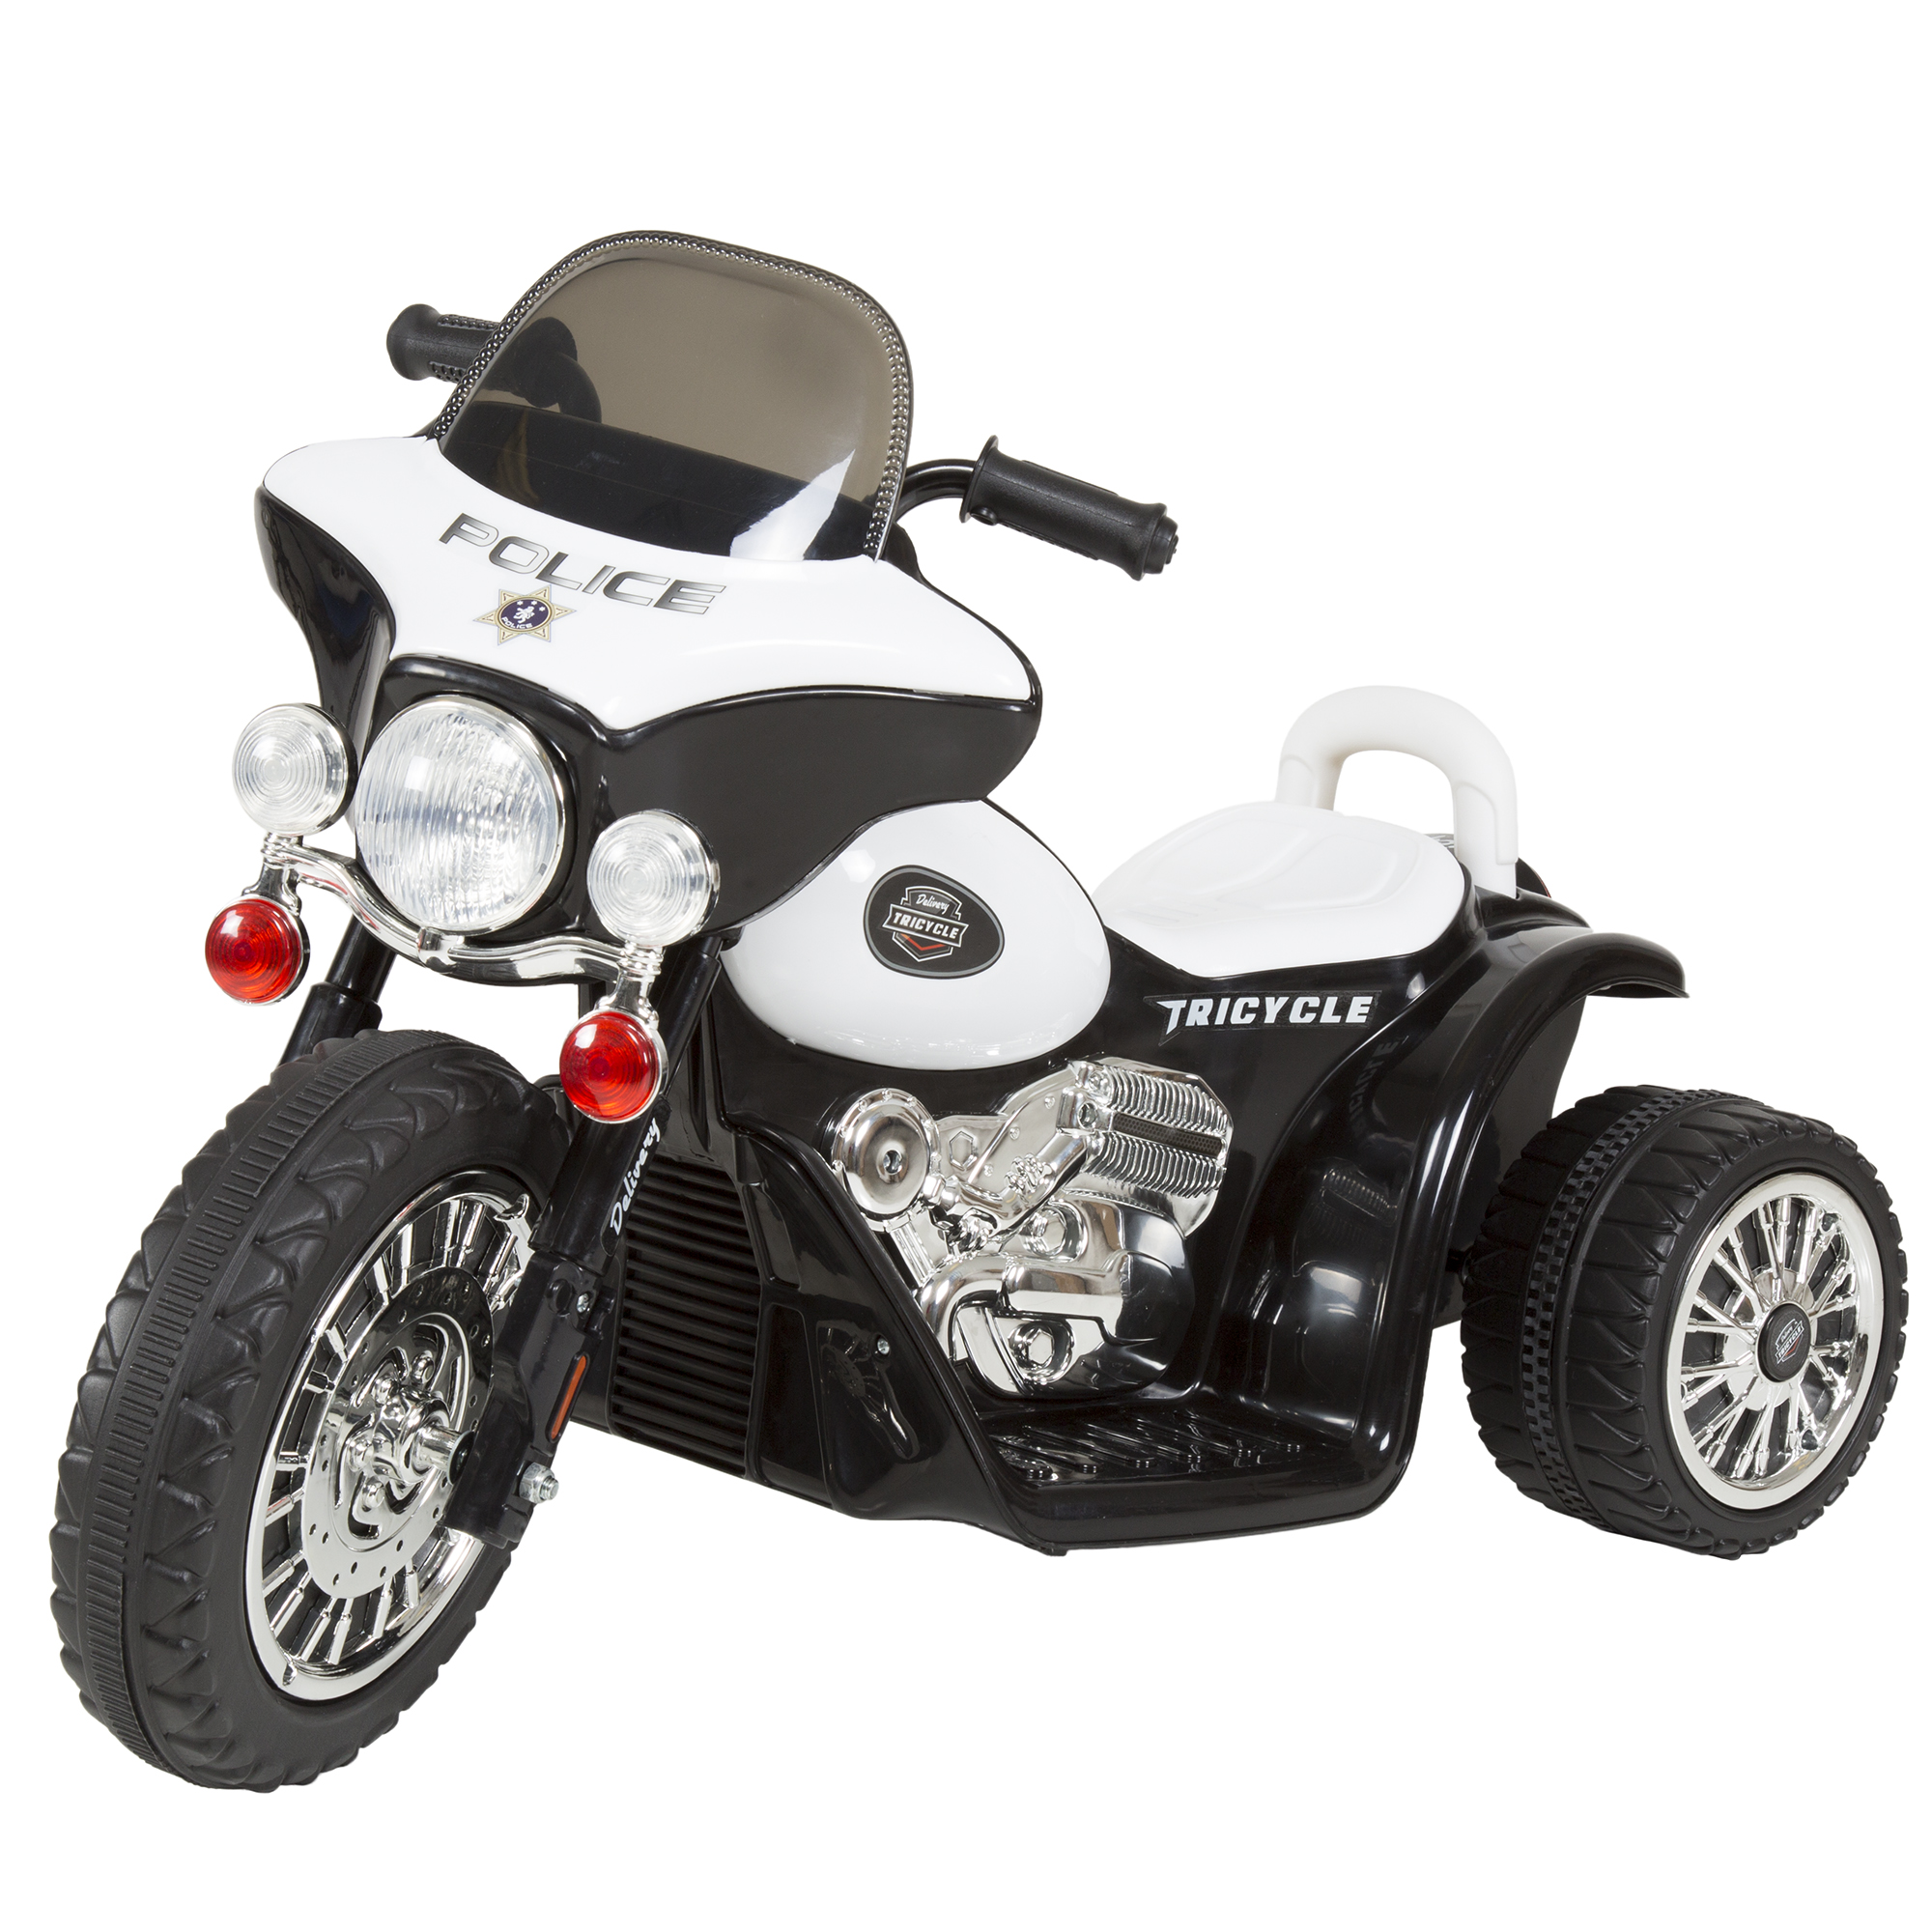 Mini Motorcycle For Kids >> Ride On Toy 3 Wheel Mini Motorcycle Trike For Kids Battery Powered